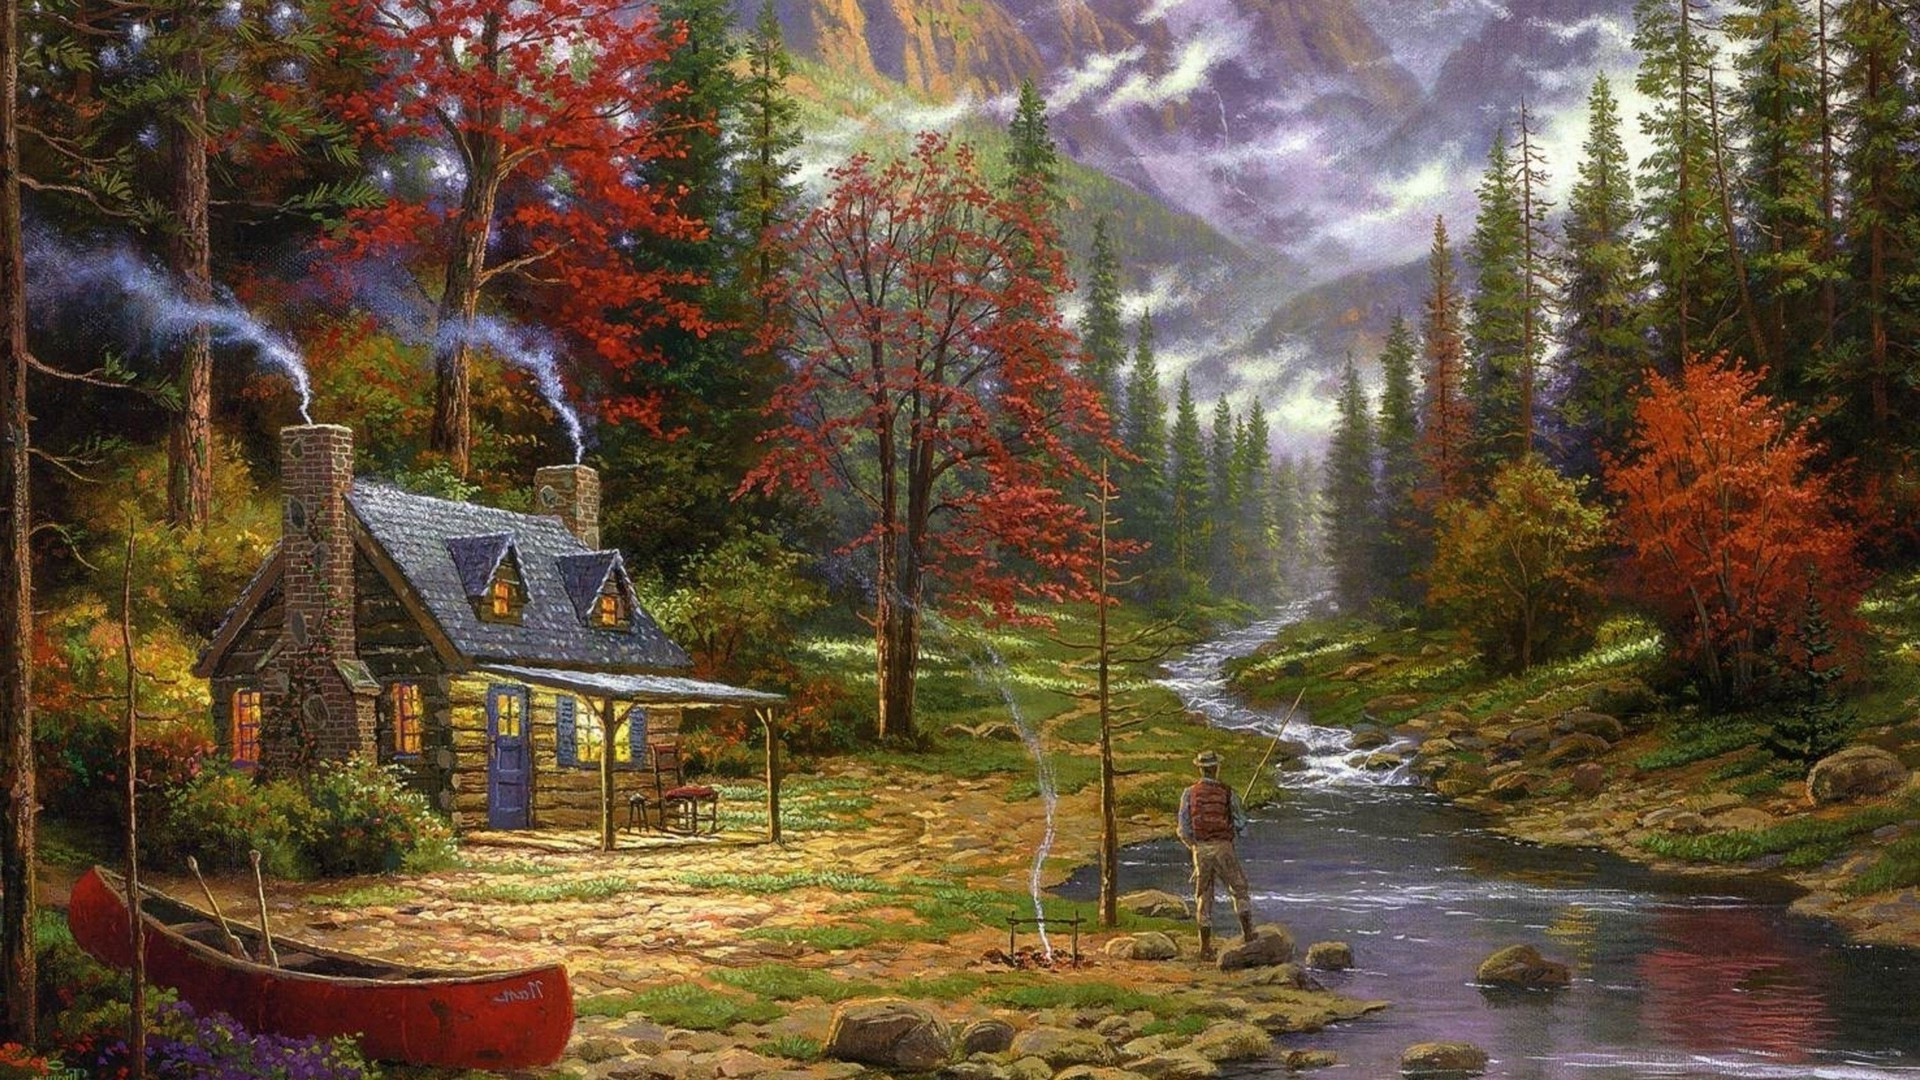 1920x1080 painting, Cottage, Canoes, River, Fishing, Forest, Chimneys, Thomas Kinkade  Wallpapers HD / Desktop and Mobile Backgrounds